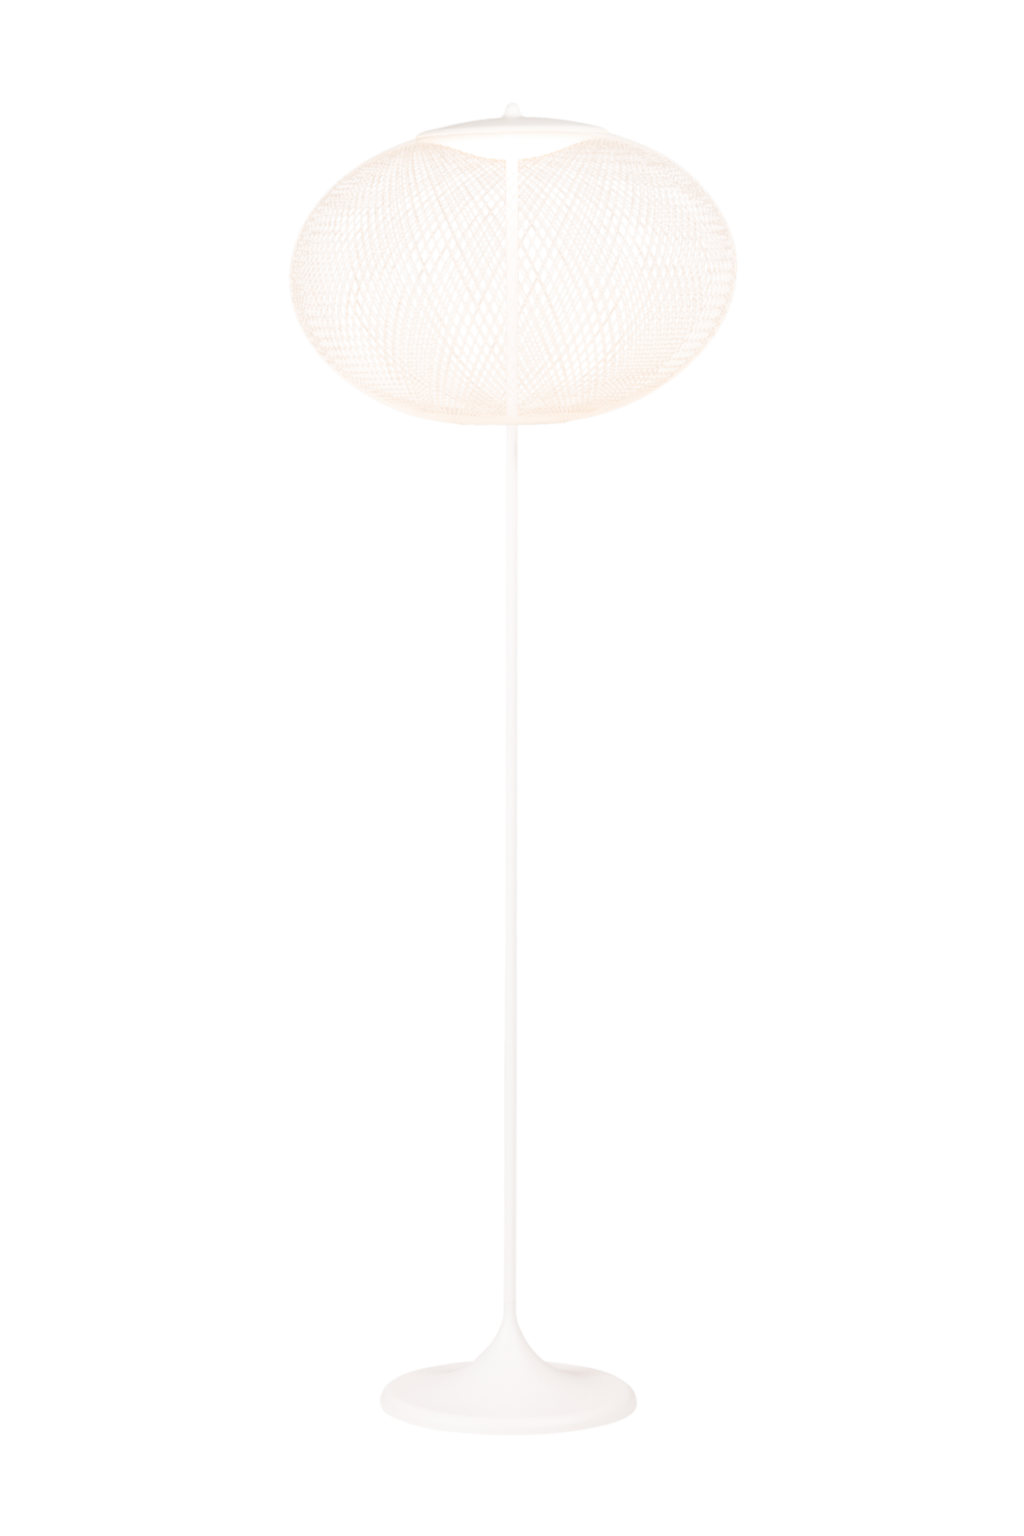 https://desidea.hu/wp-content/uploads/fly-images/160187/moooi-nr2-allolampa4-1024x0.png